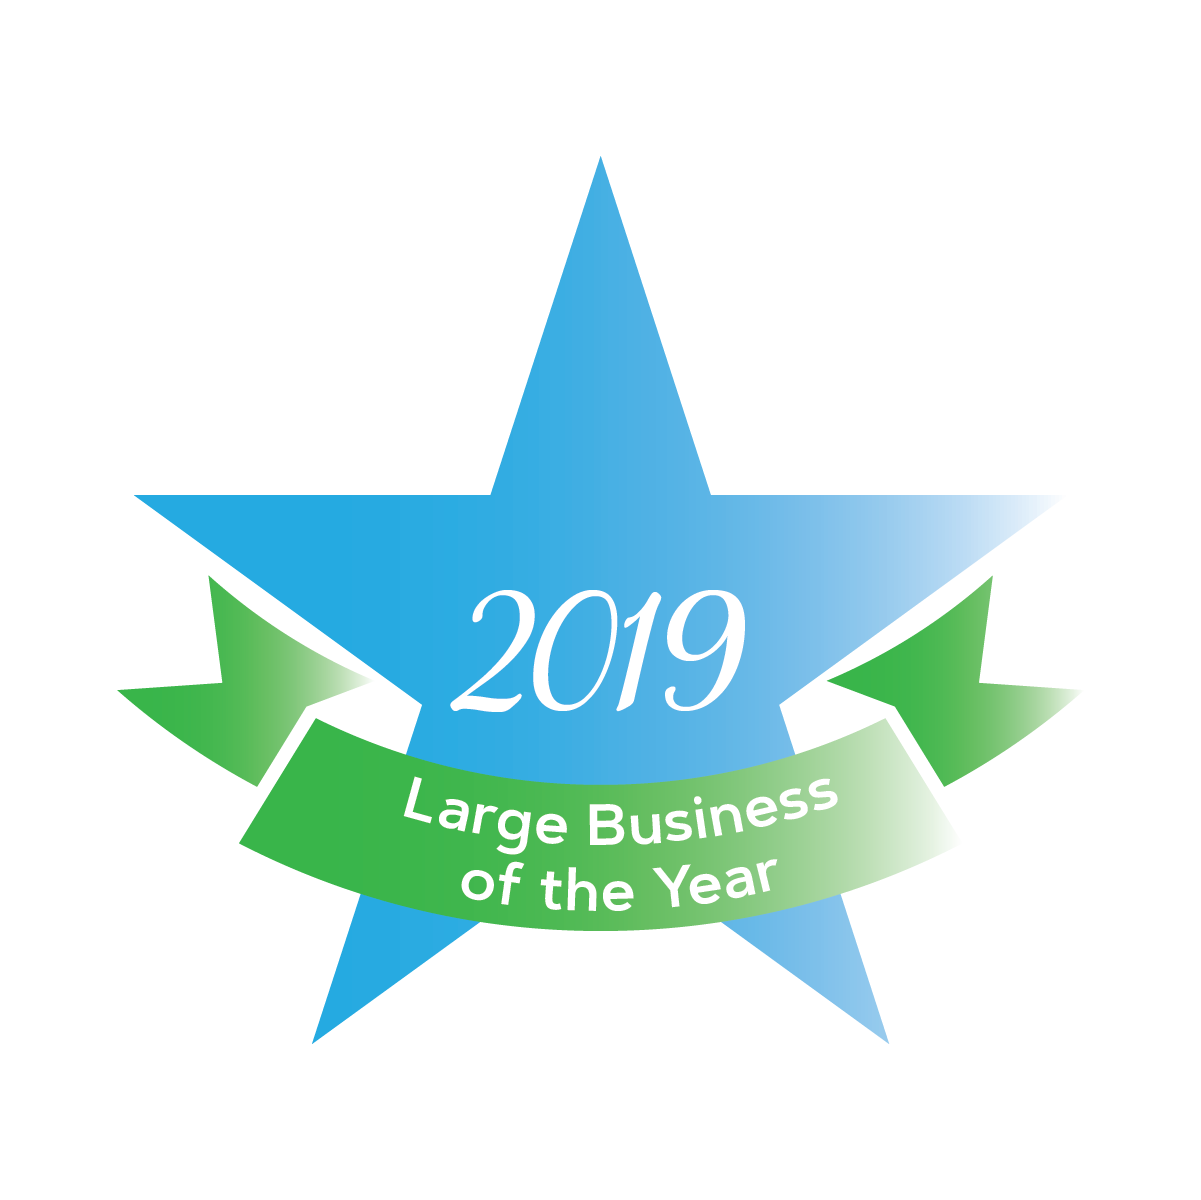 largebusiness award 2019 image